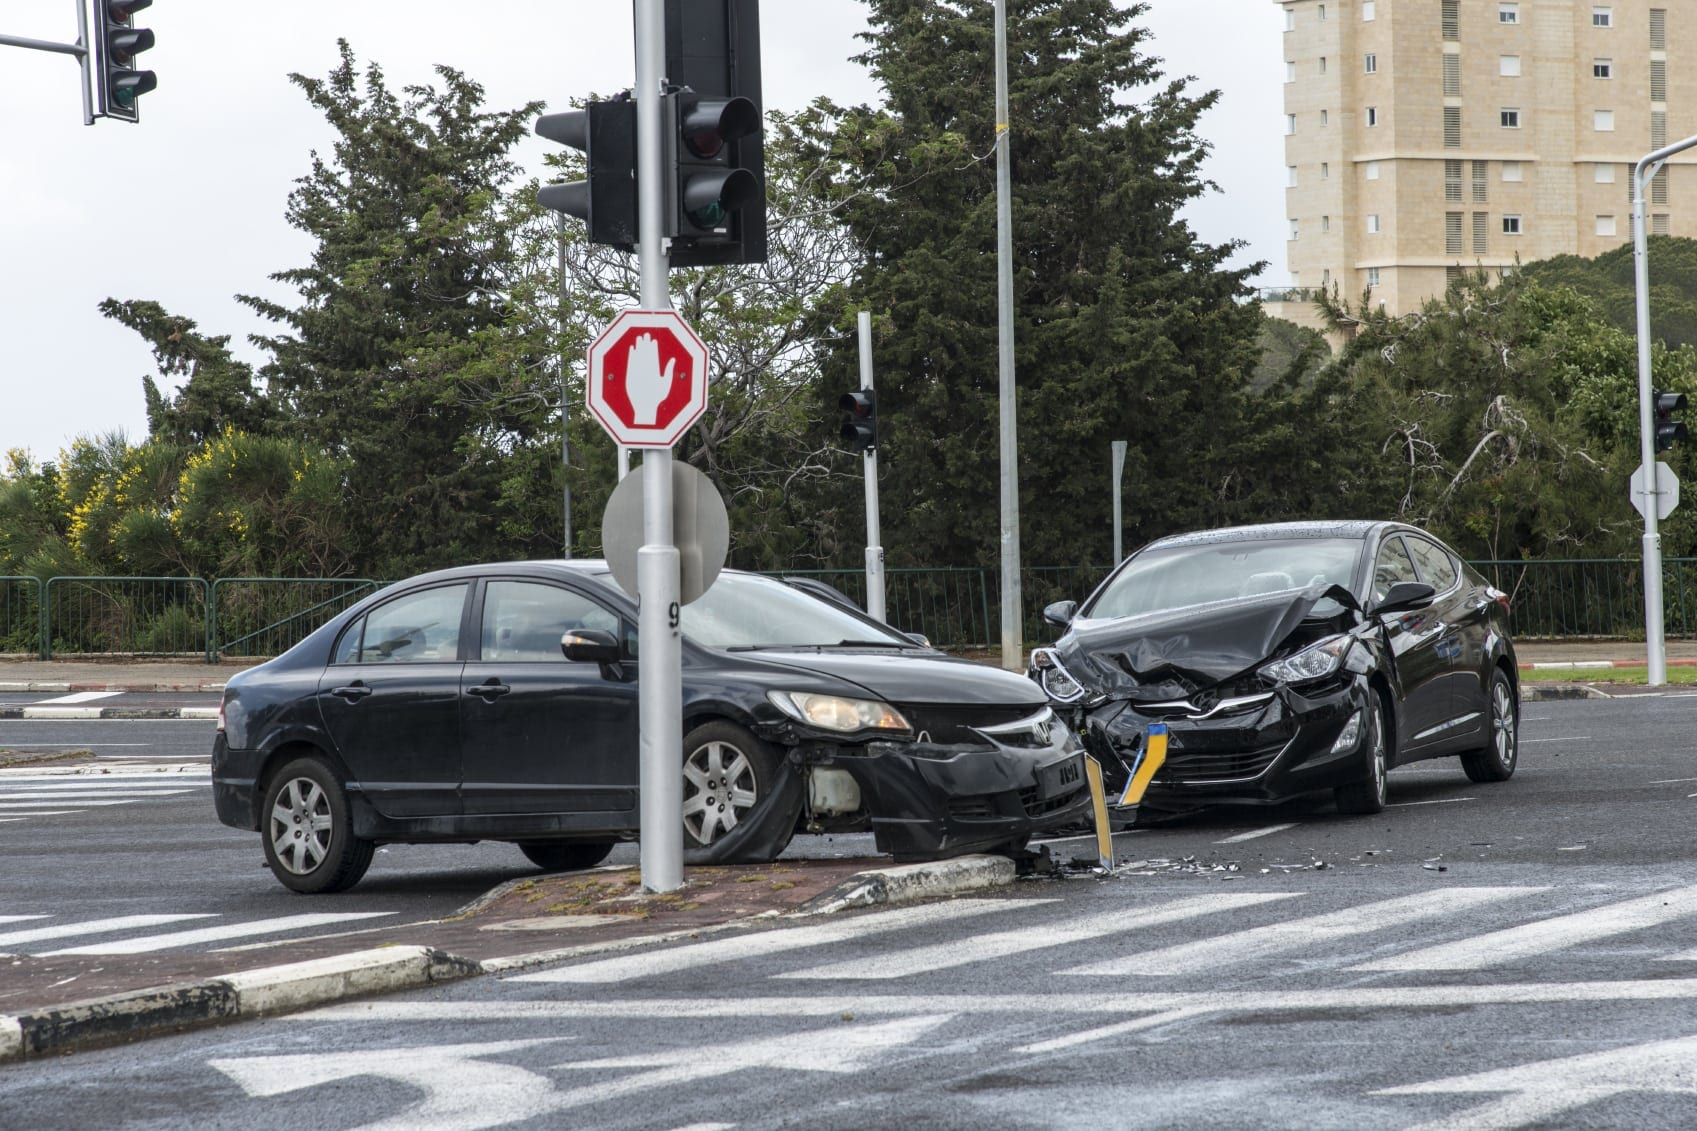 Auto Accident At City Intersection Stock Photo